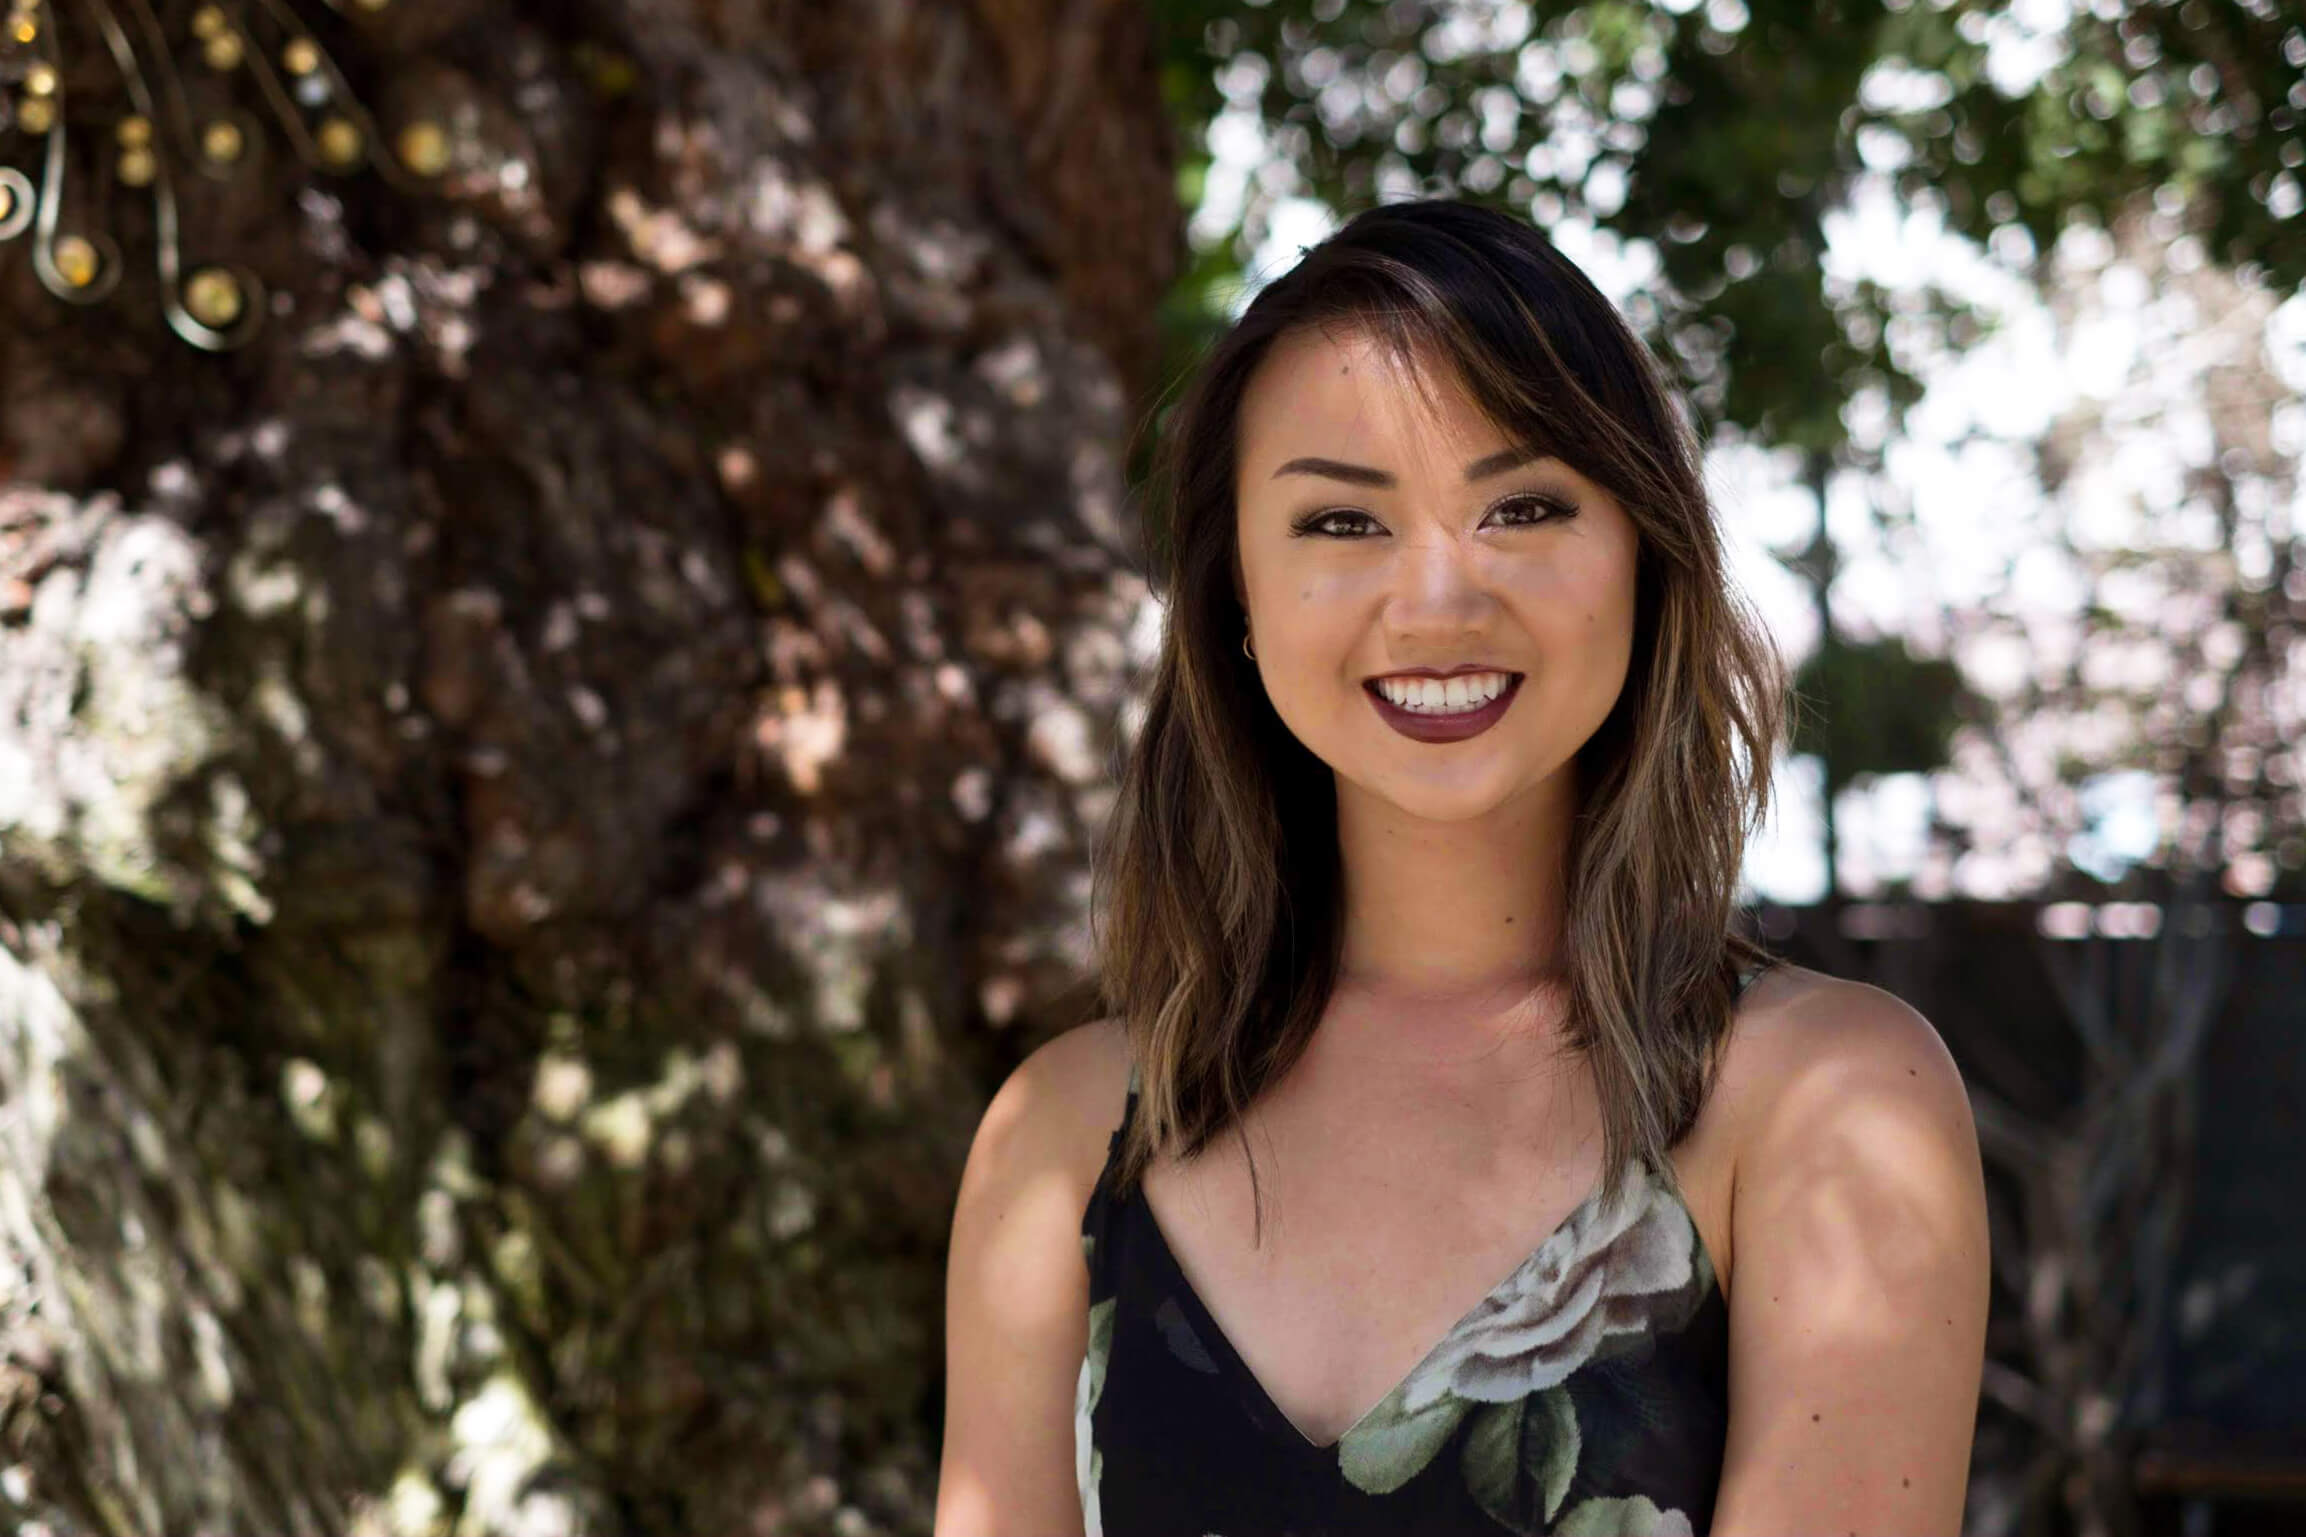 ASI student staff member Jackie Nguyen sits in front of a tree and smiles